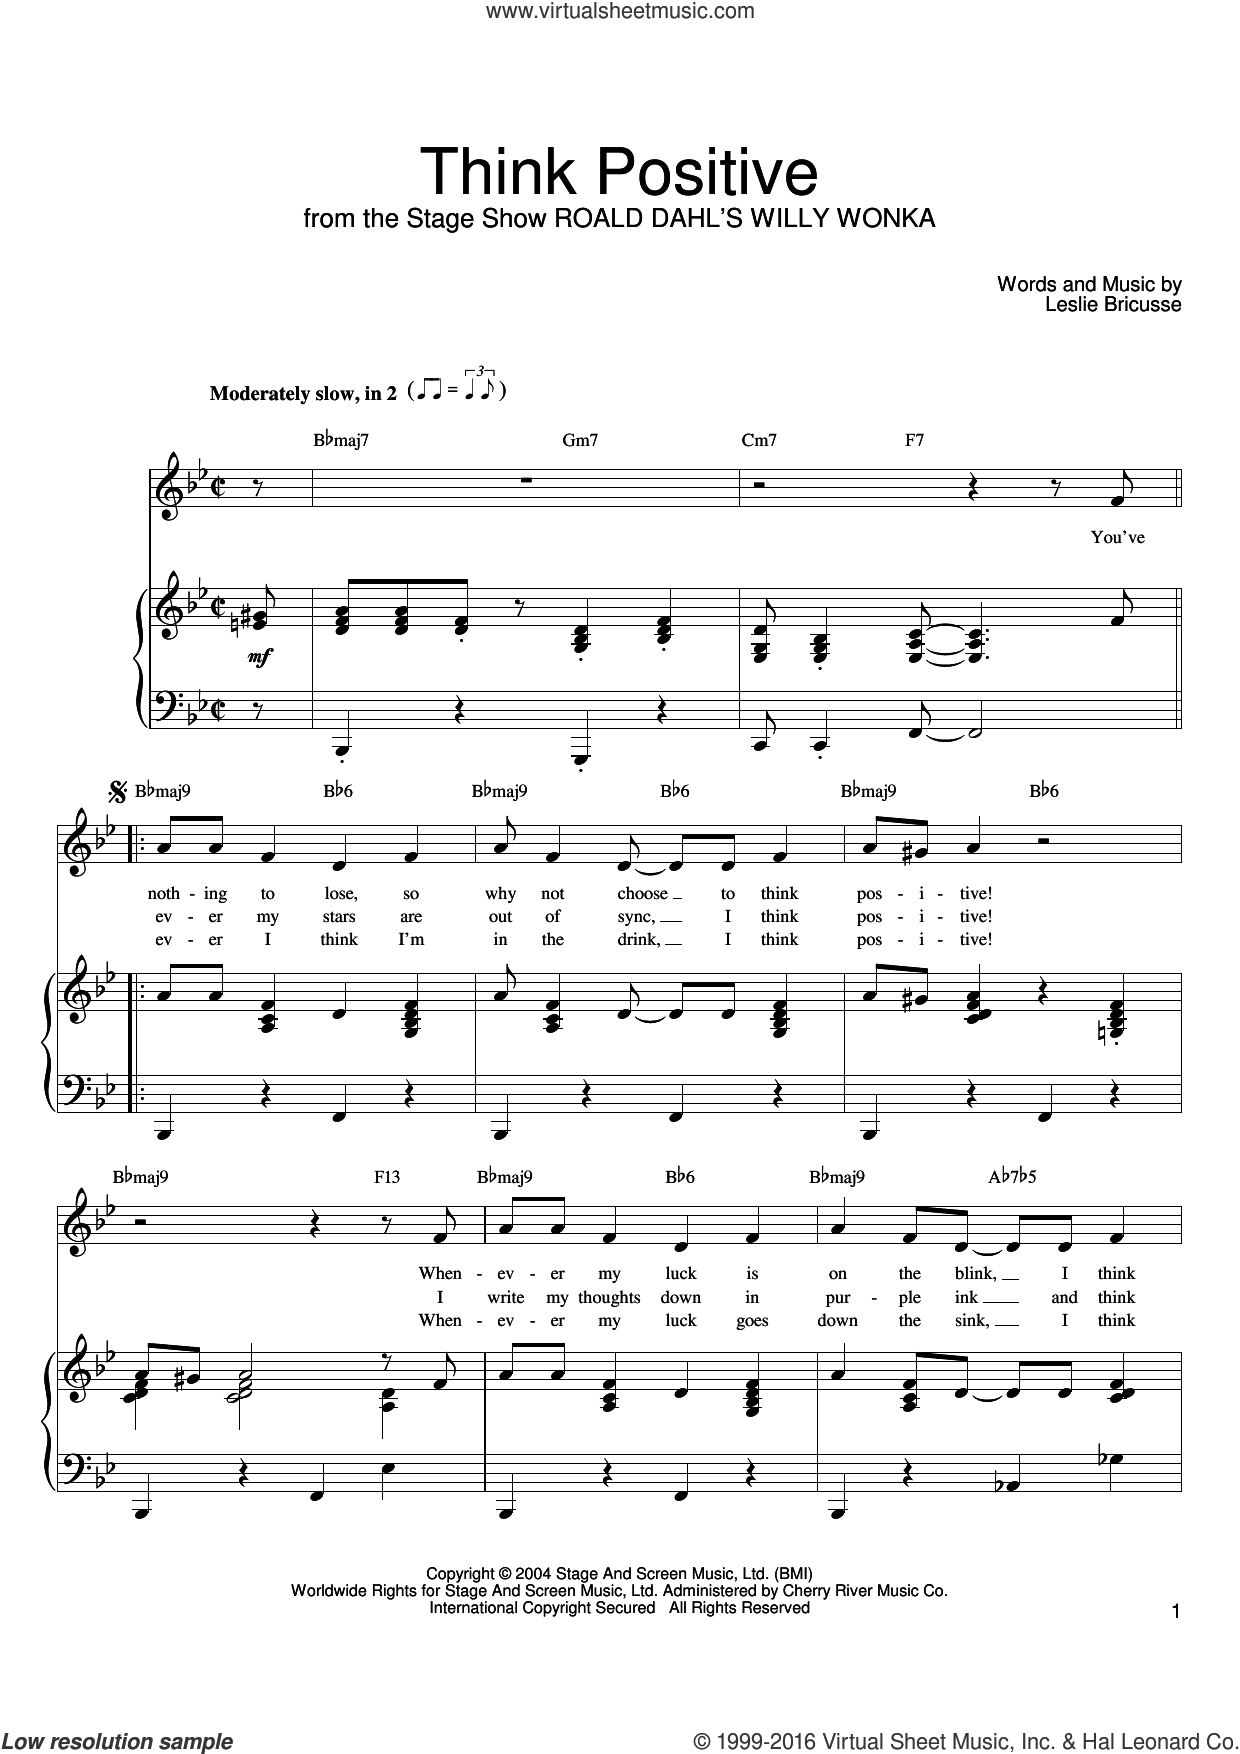 Think Positive sheet music for voice, piano or guitar by Leslie Bricusse